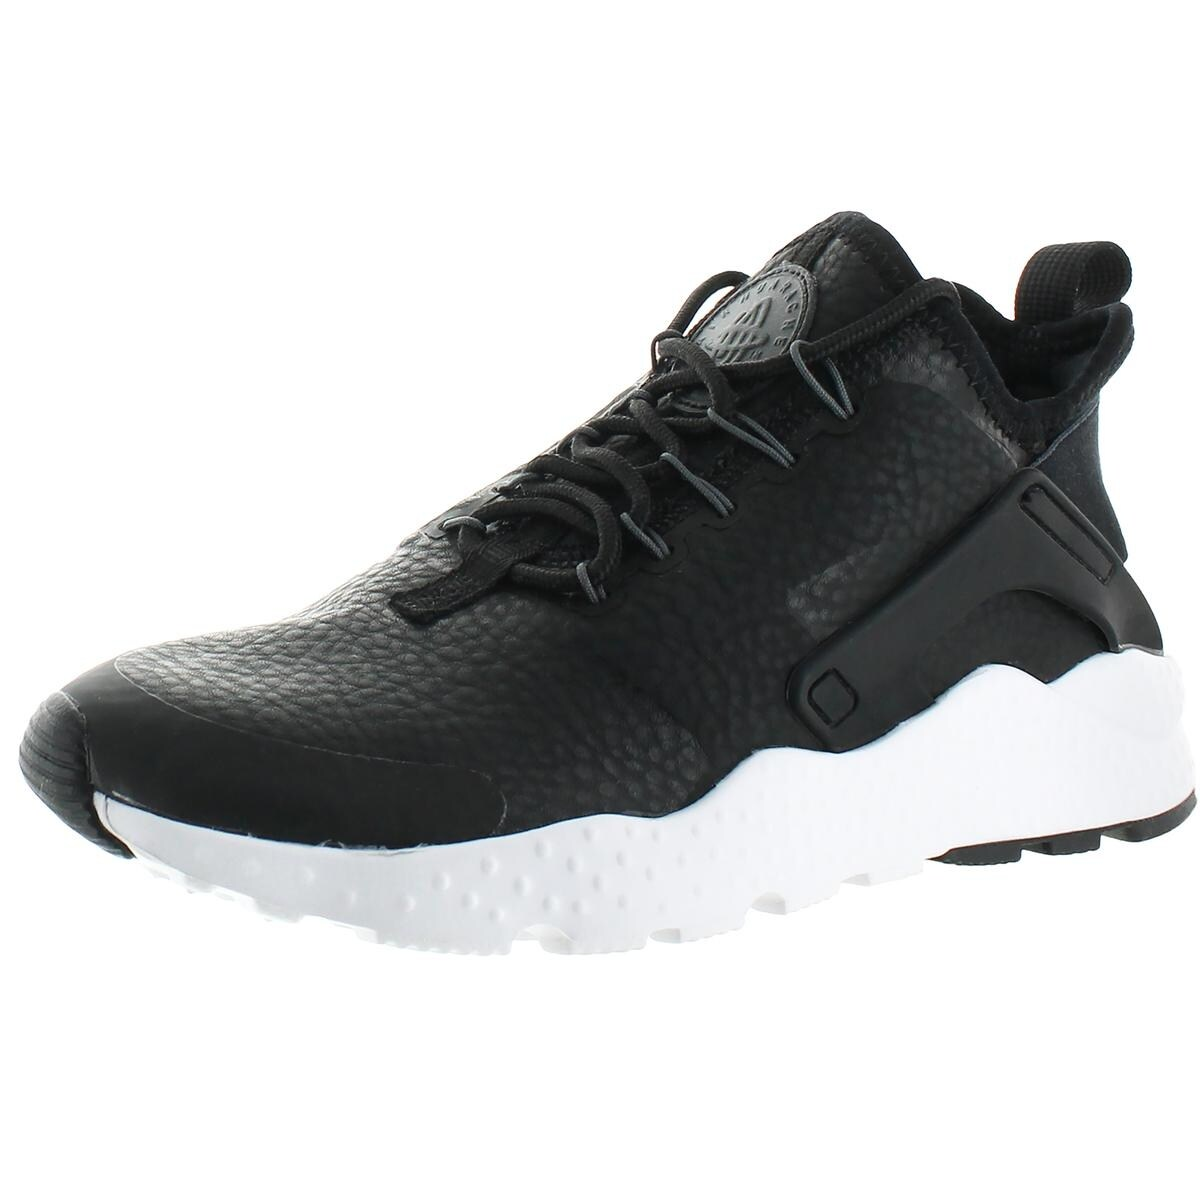 a9d34ad1b68 Shop Nike Womens Air Huarache Run Ultra PRM Running Shoes Snake Print  Straps - Free Shipping Today - Overstock - 21942537